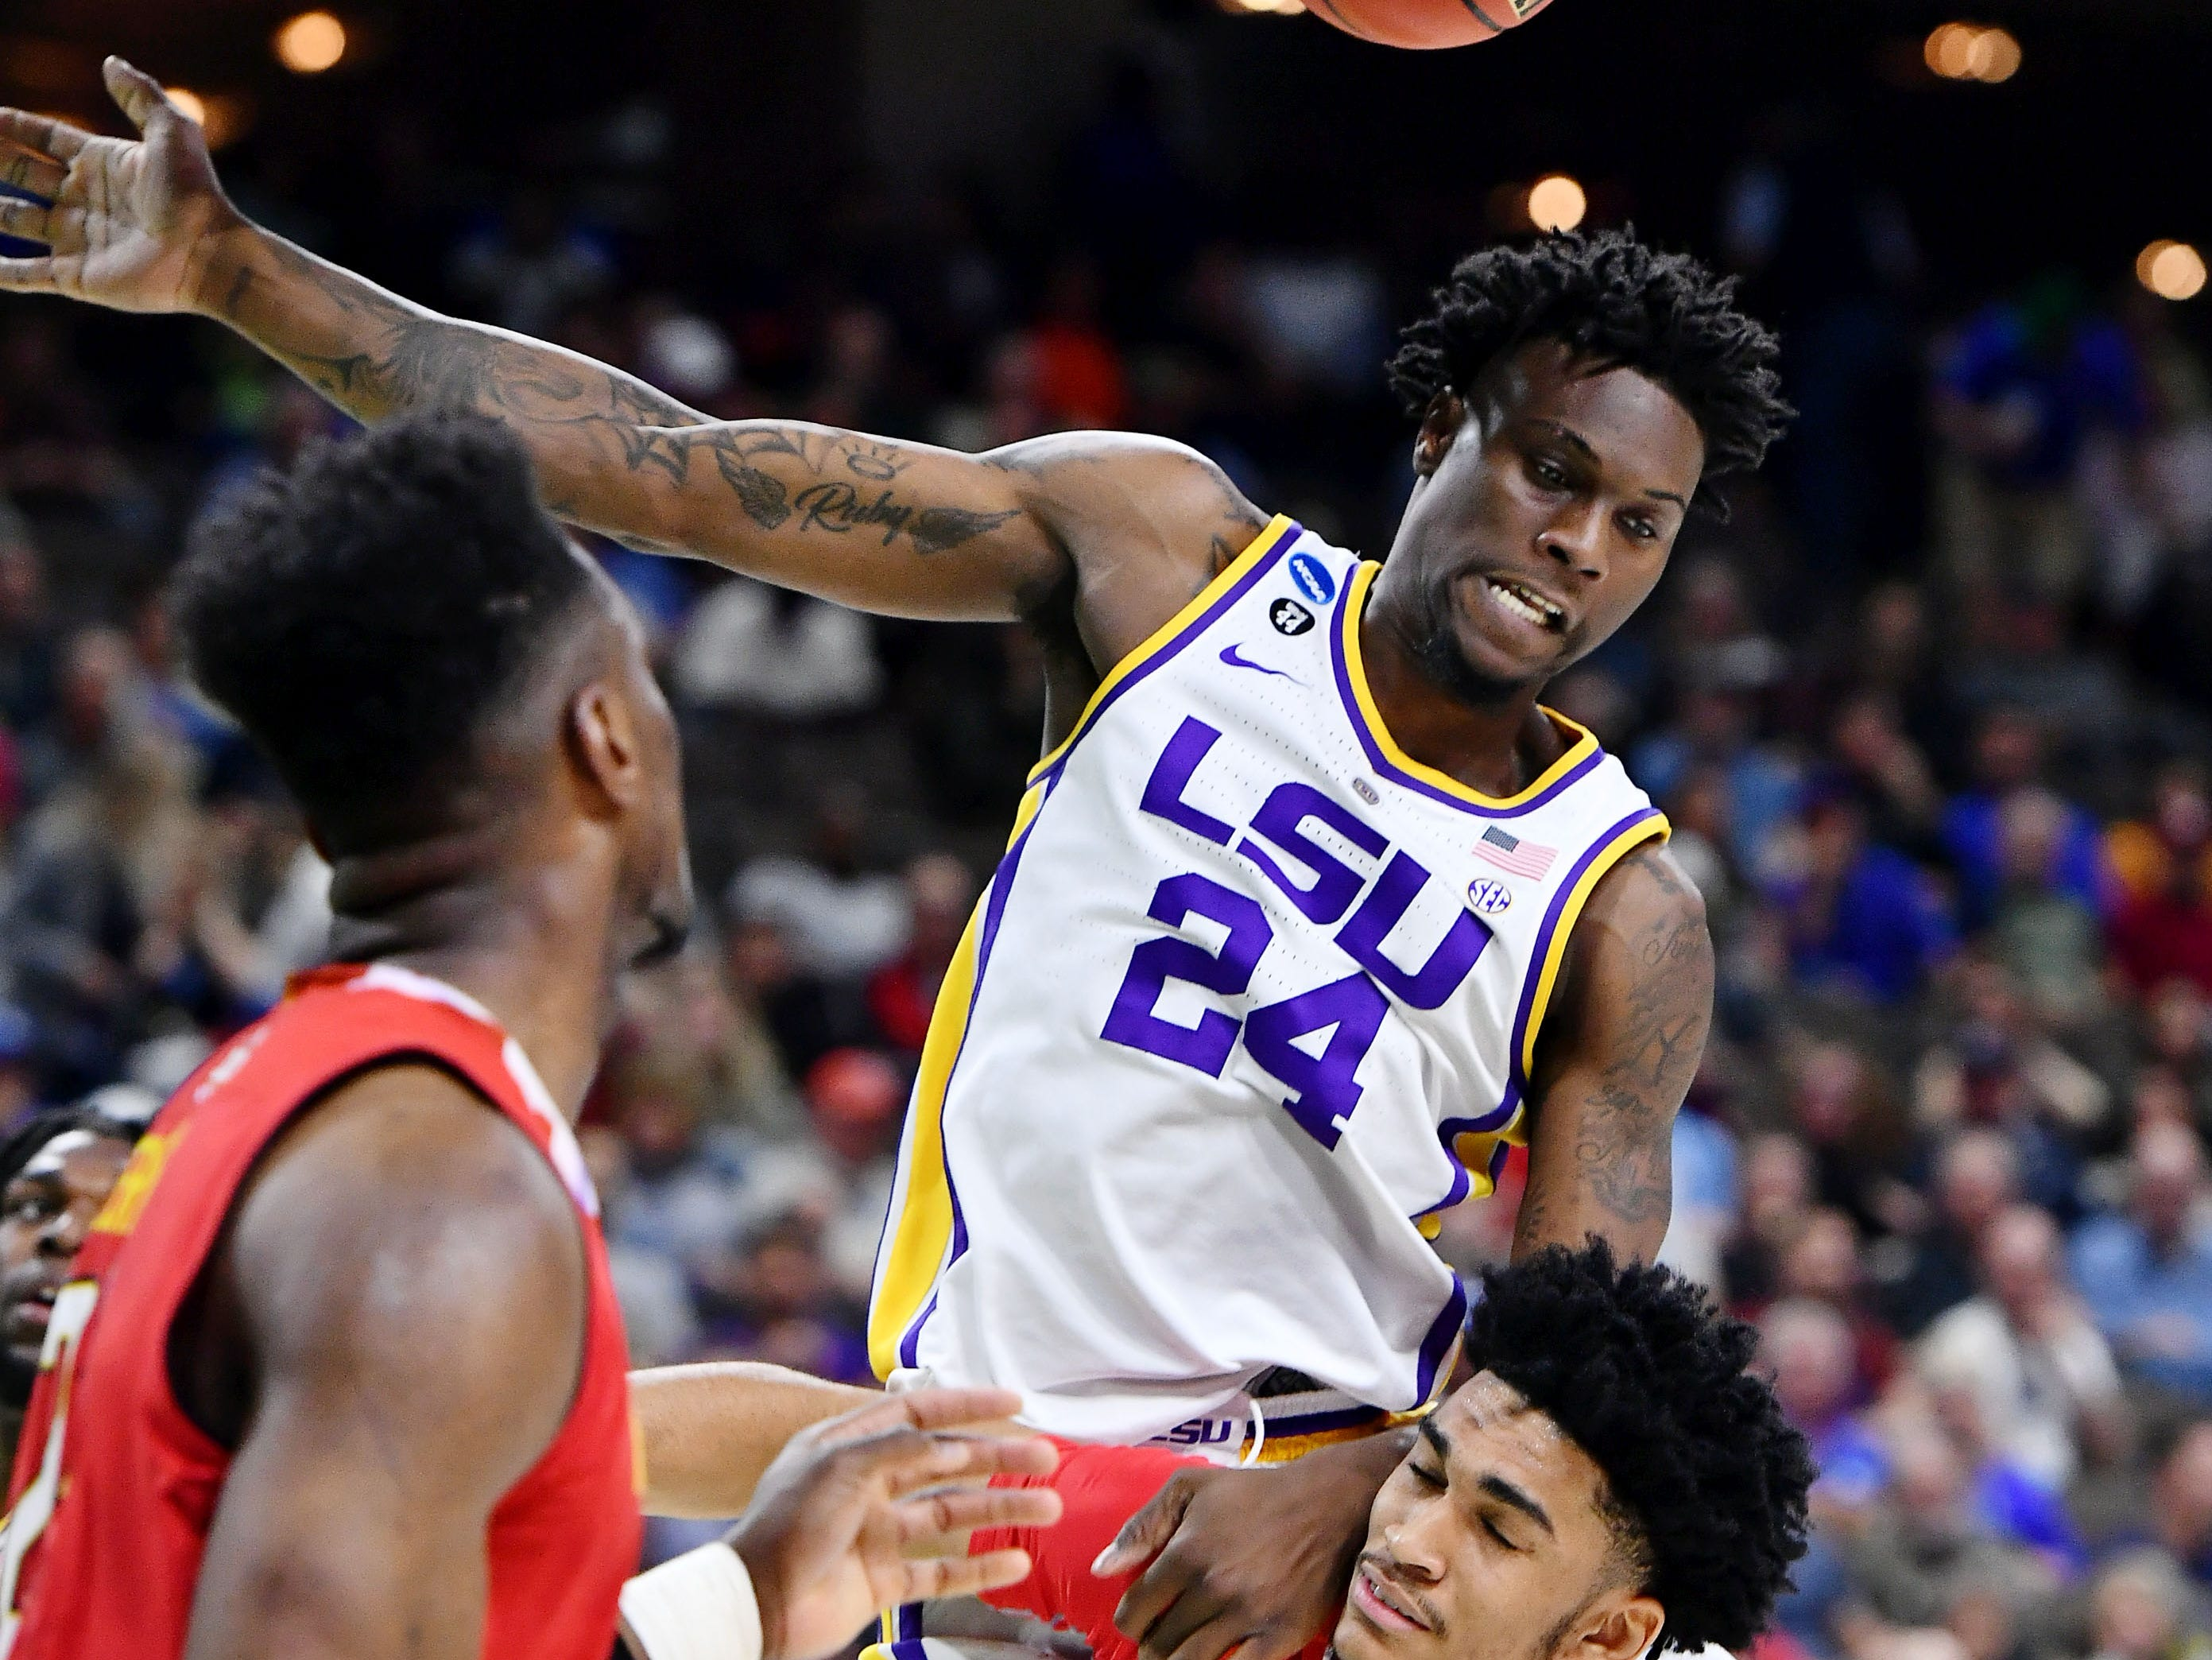 Mar 23, 2019; Jacksonville, FL, USA; LSU Tigers forward Emmitt Williams (24) lands on Maryland Terrapins forward Ricky Lindo Jr. (14) after making a basket during the first half in the second round of the 2019 NCAA Tournament at Jacksonville Veterans Memorial Arena. Mandatory Credit: John David Mercer-USA TODAY Sports